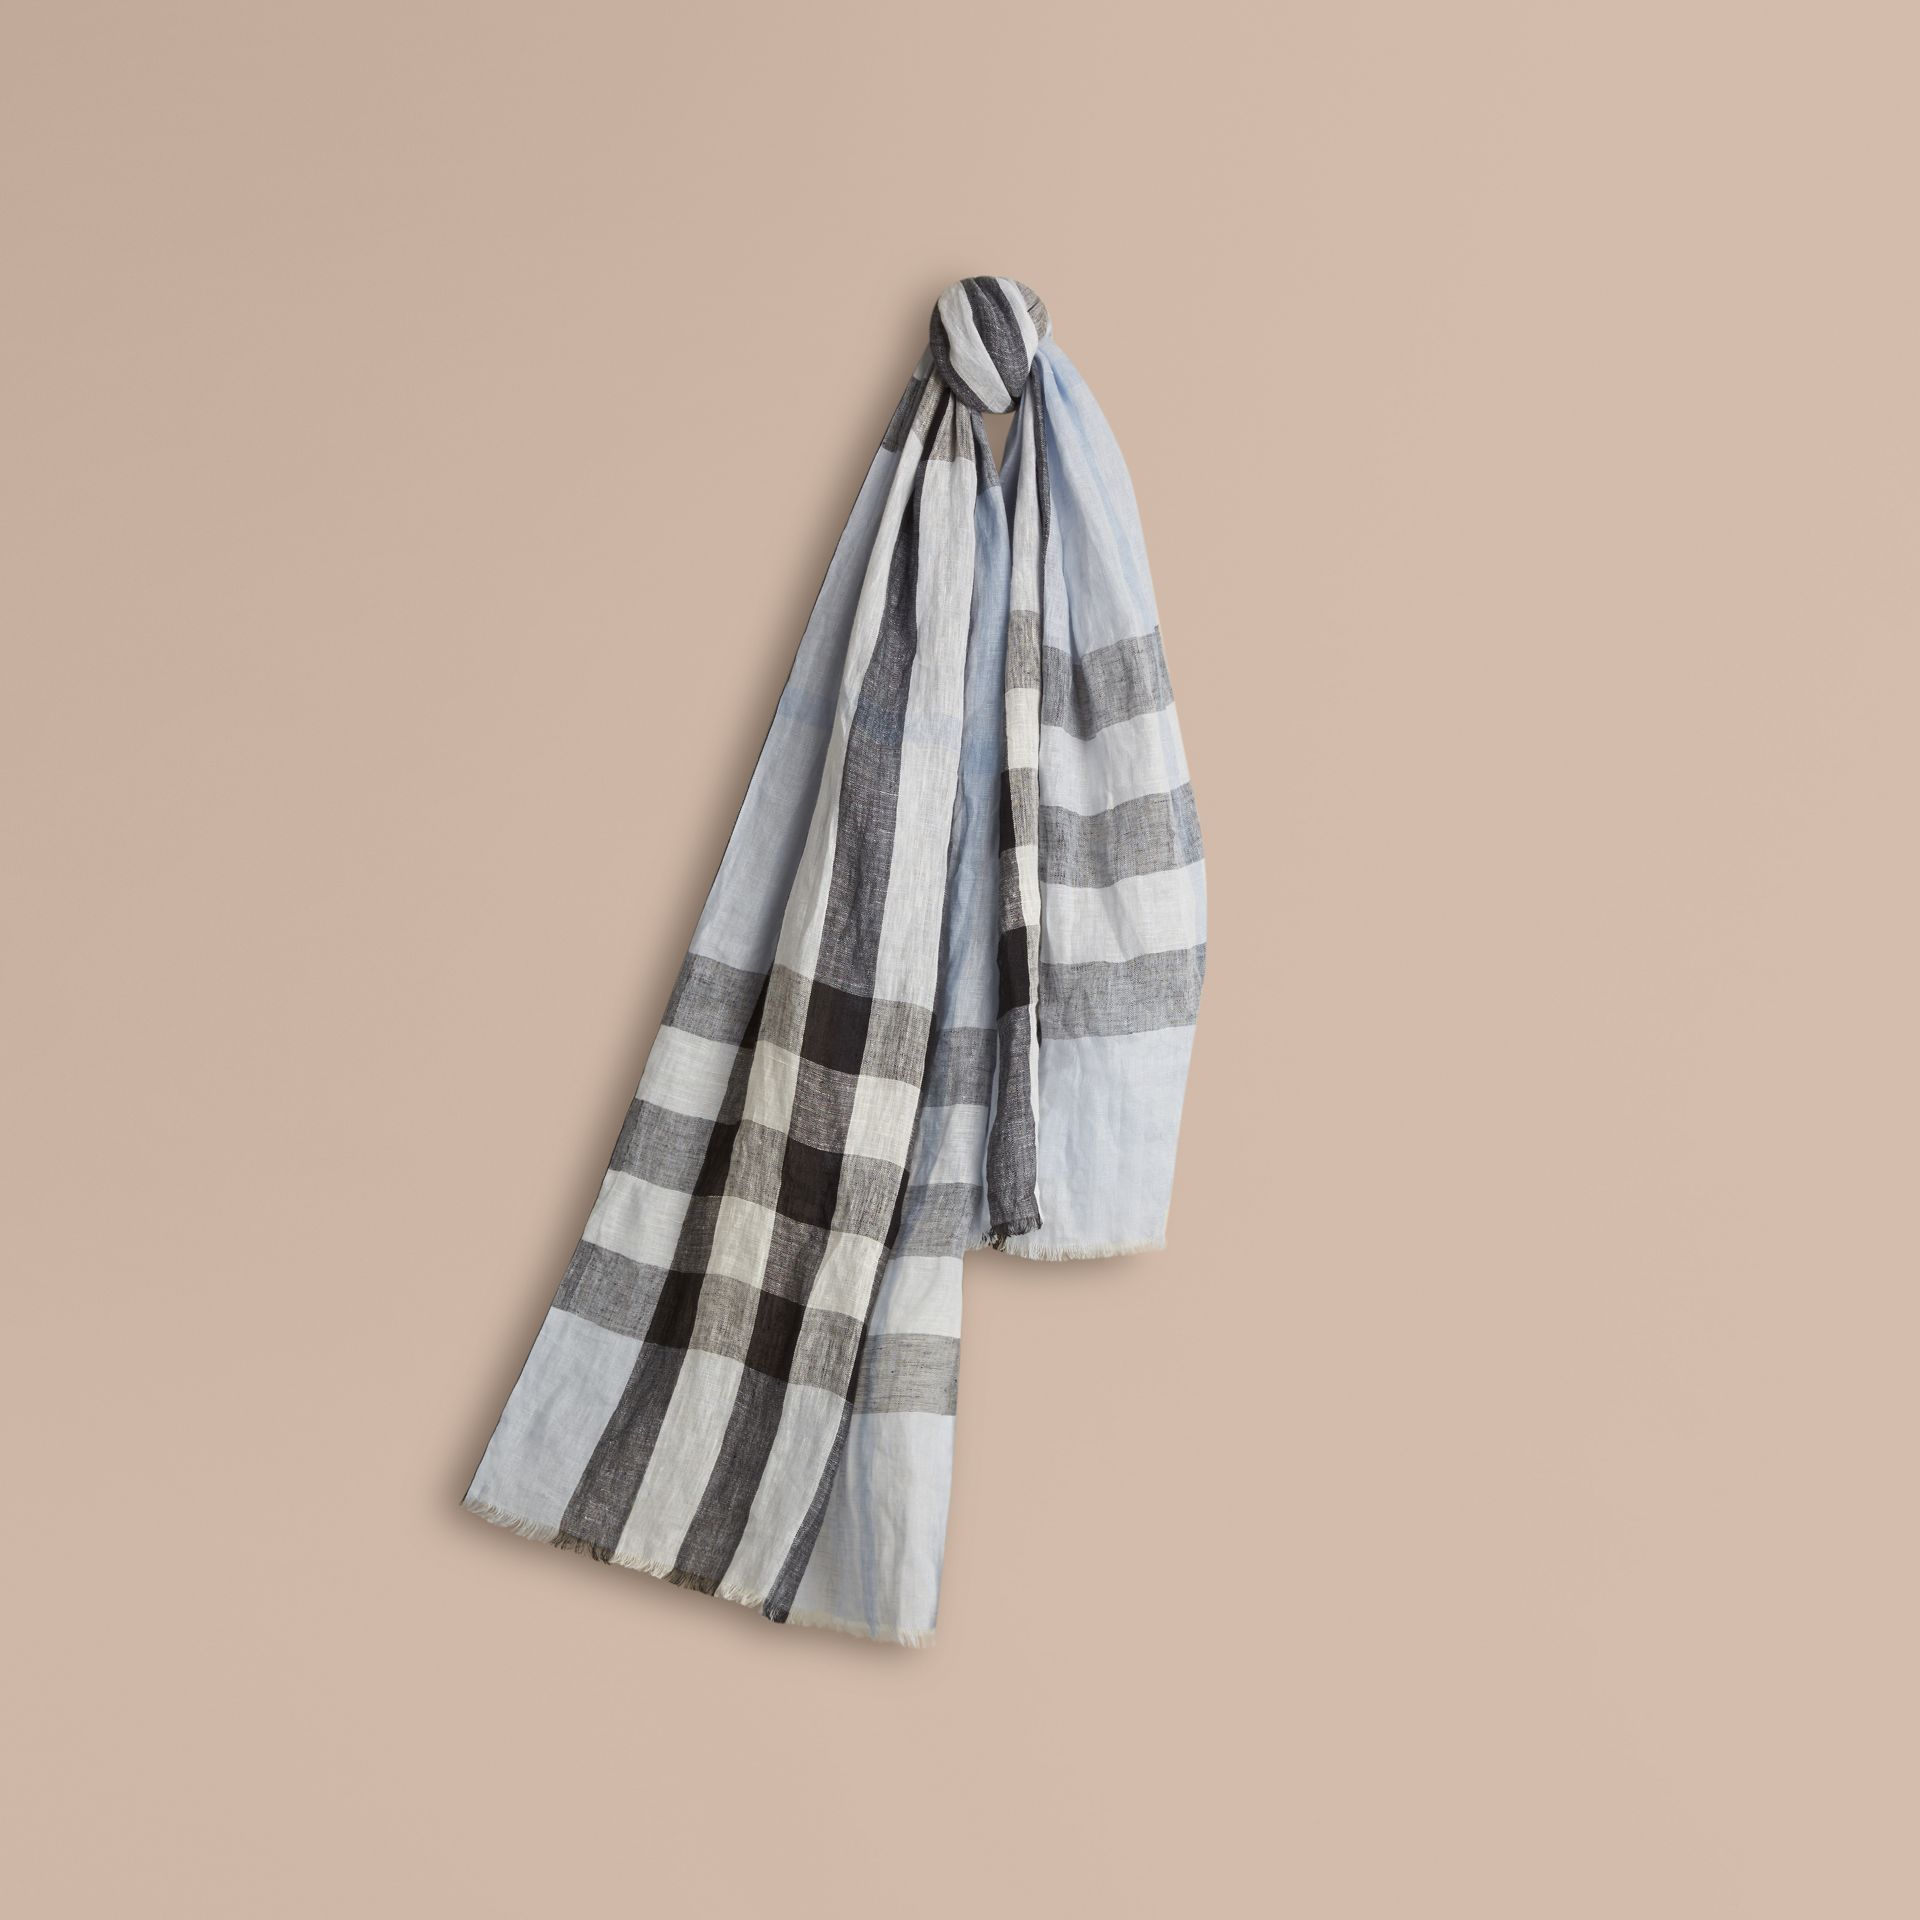 Pale sky blue Check Crinkled Linen Scarf Pale Sky Blue - gallery image 1